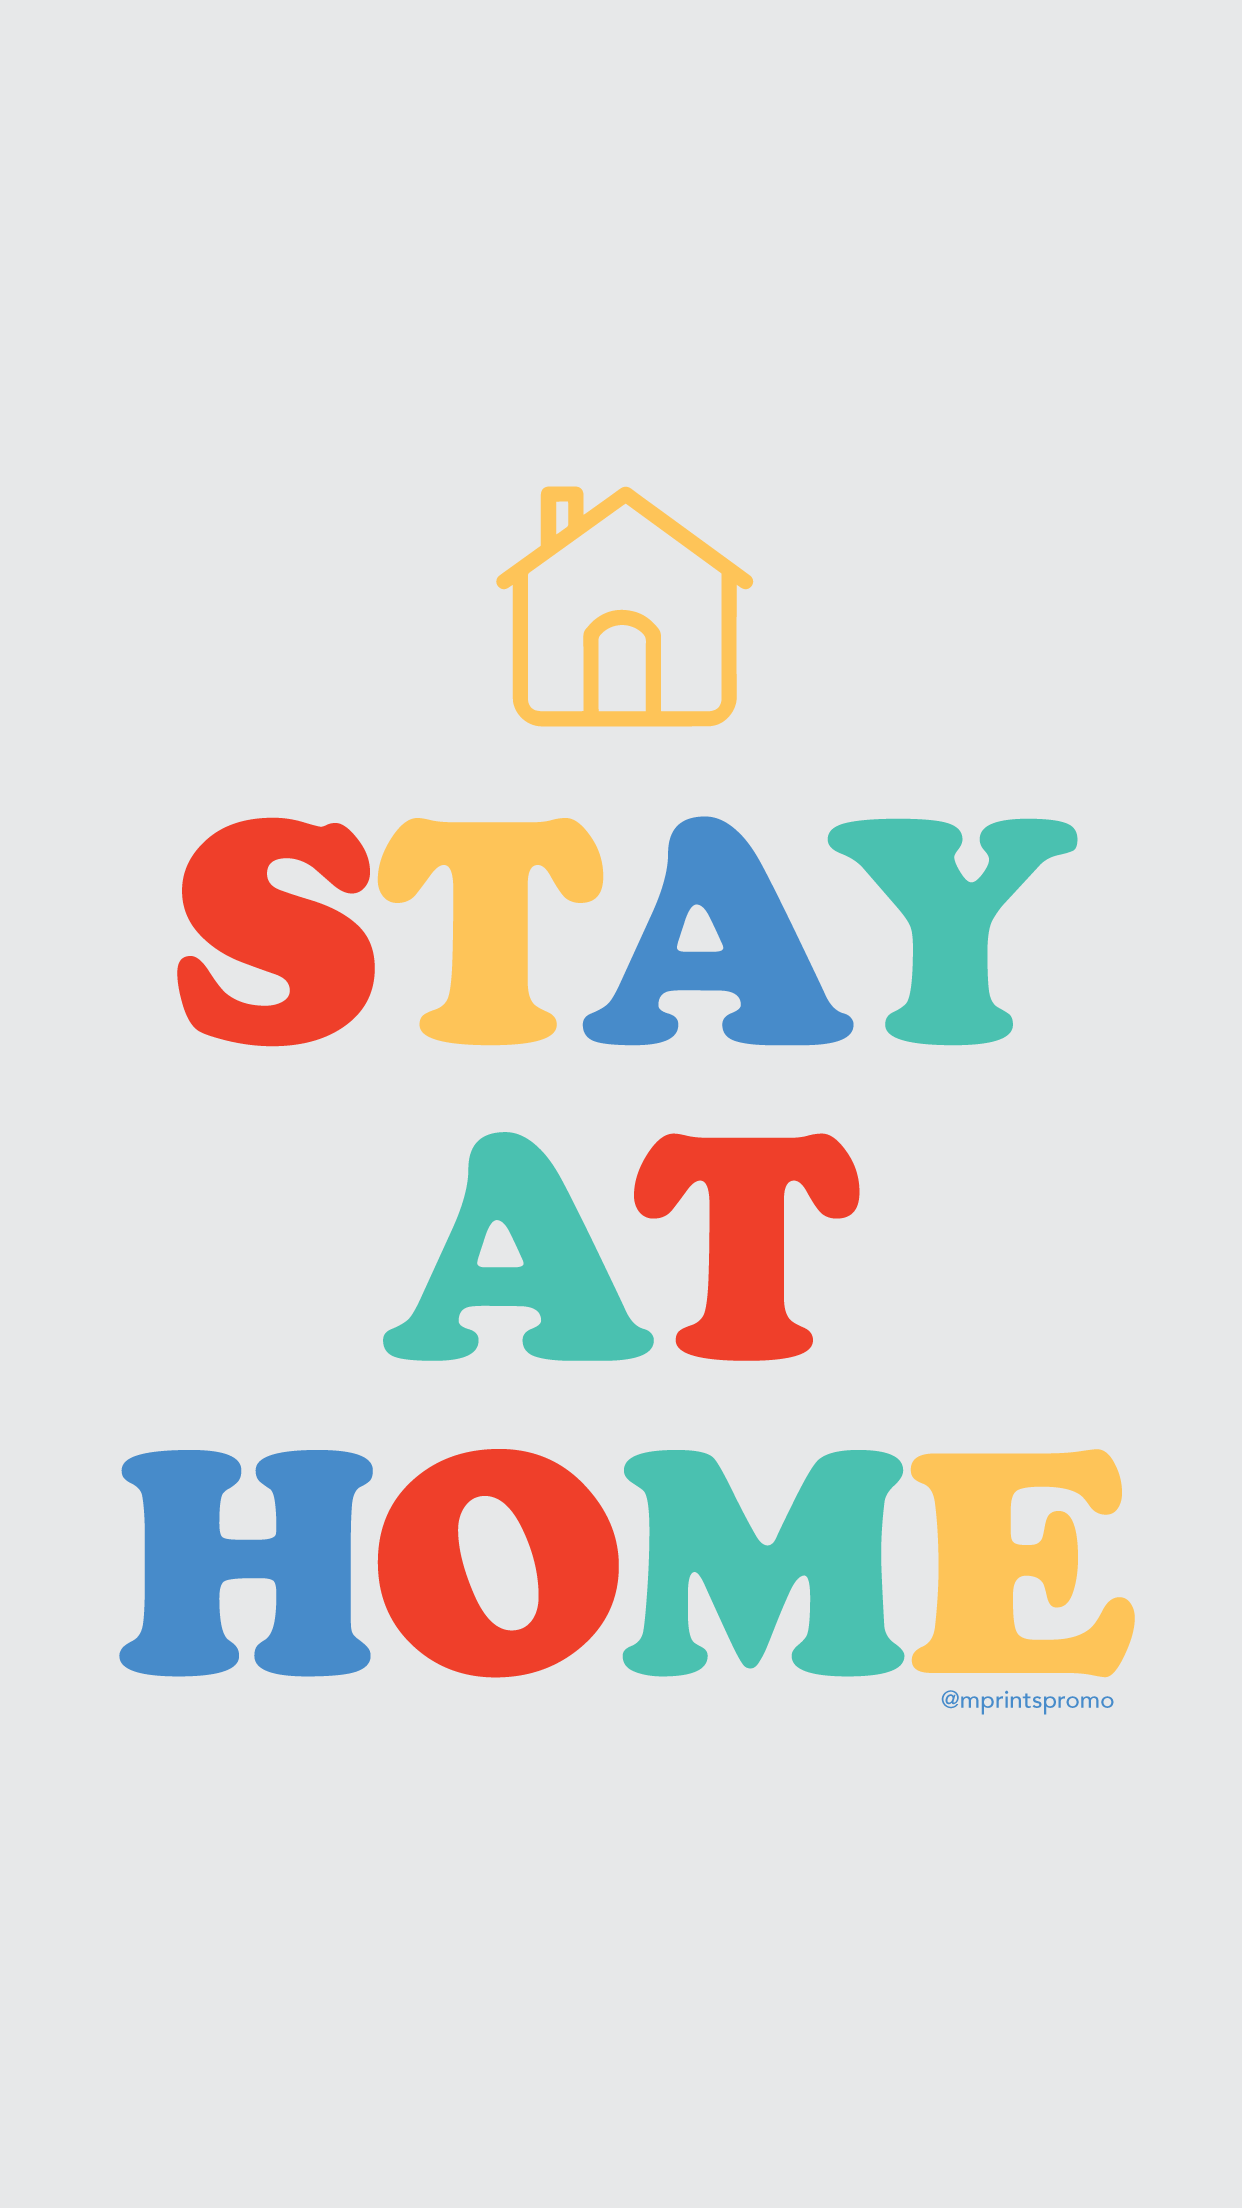 Stay Home WFH Free Wallpaper Flatten the Curve